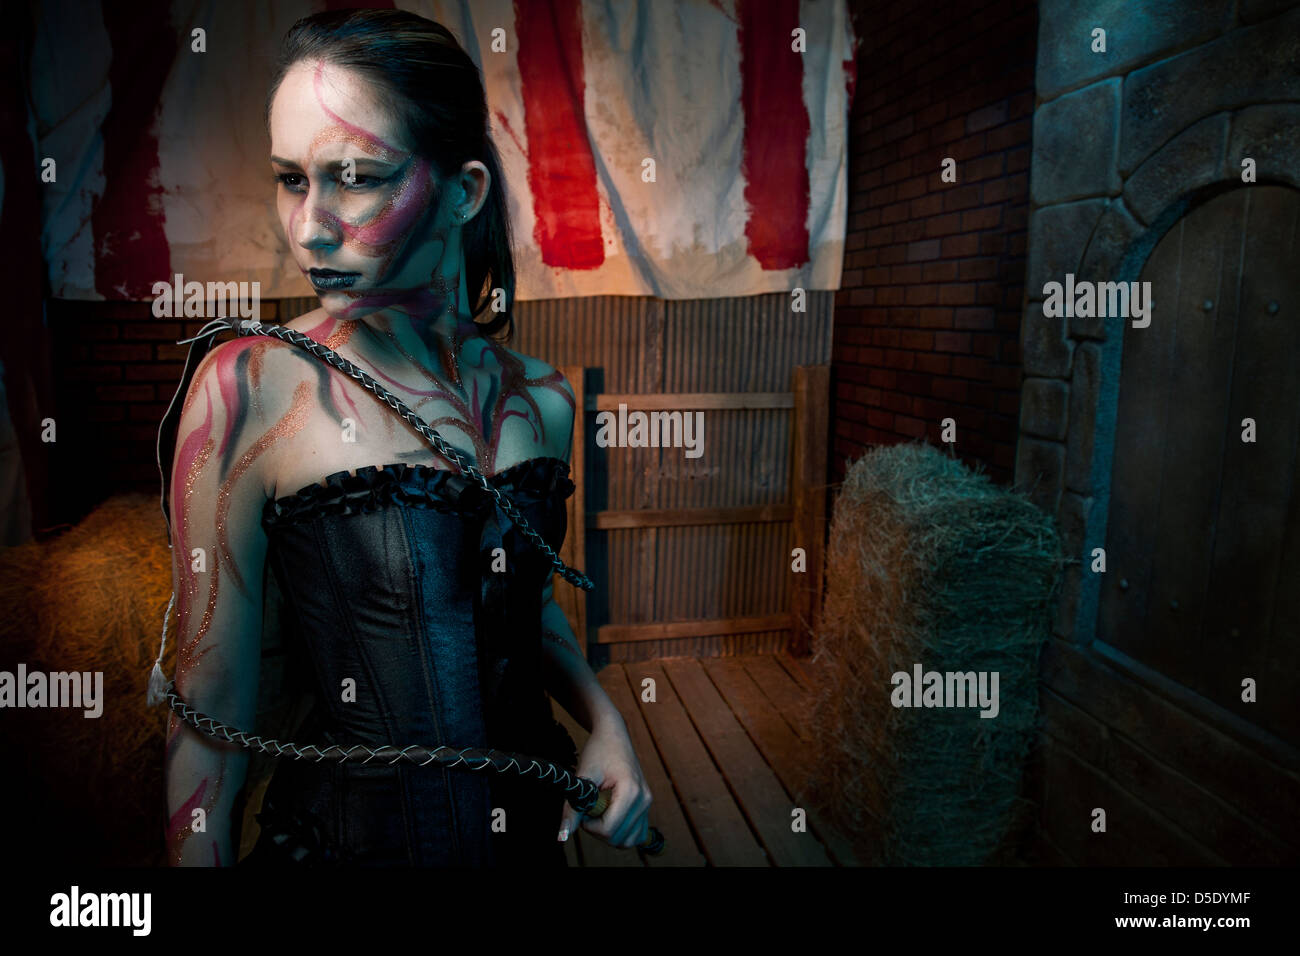 Woman with tattoos and whip in tinted alley - Stock Image